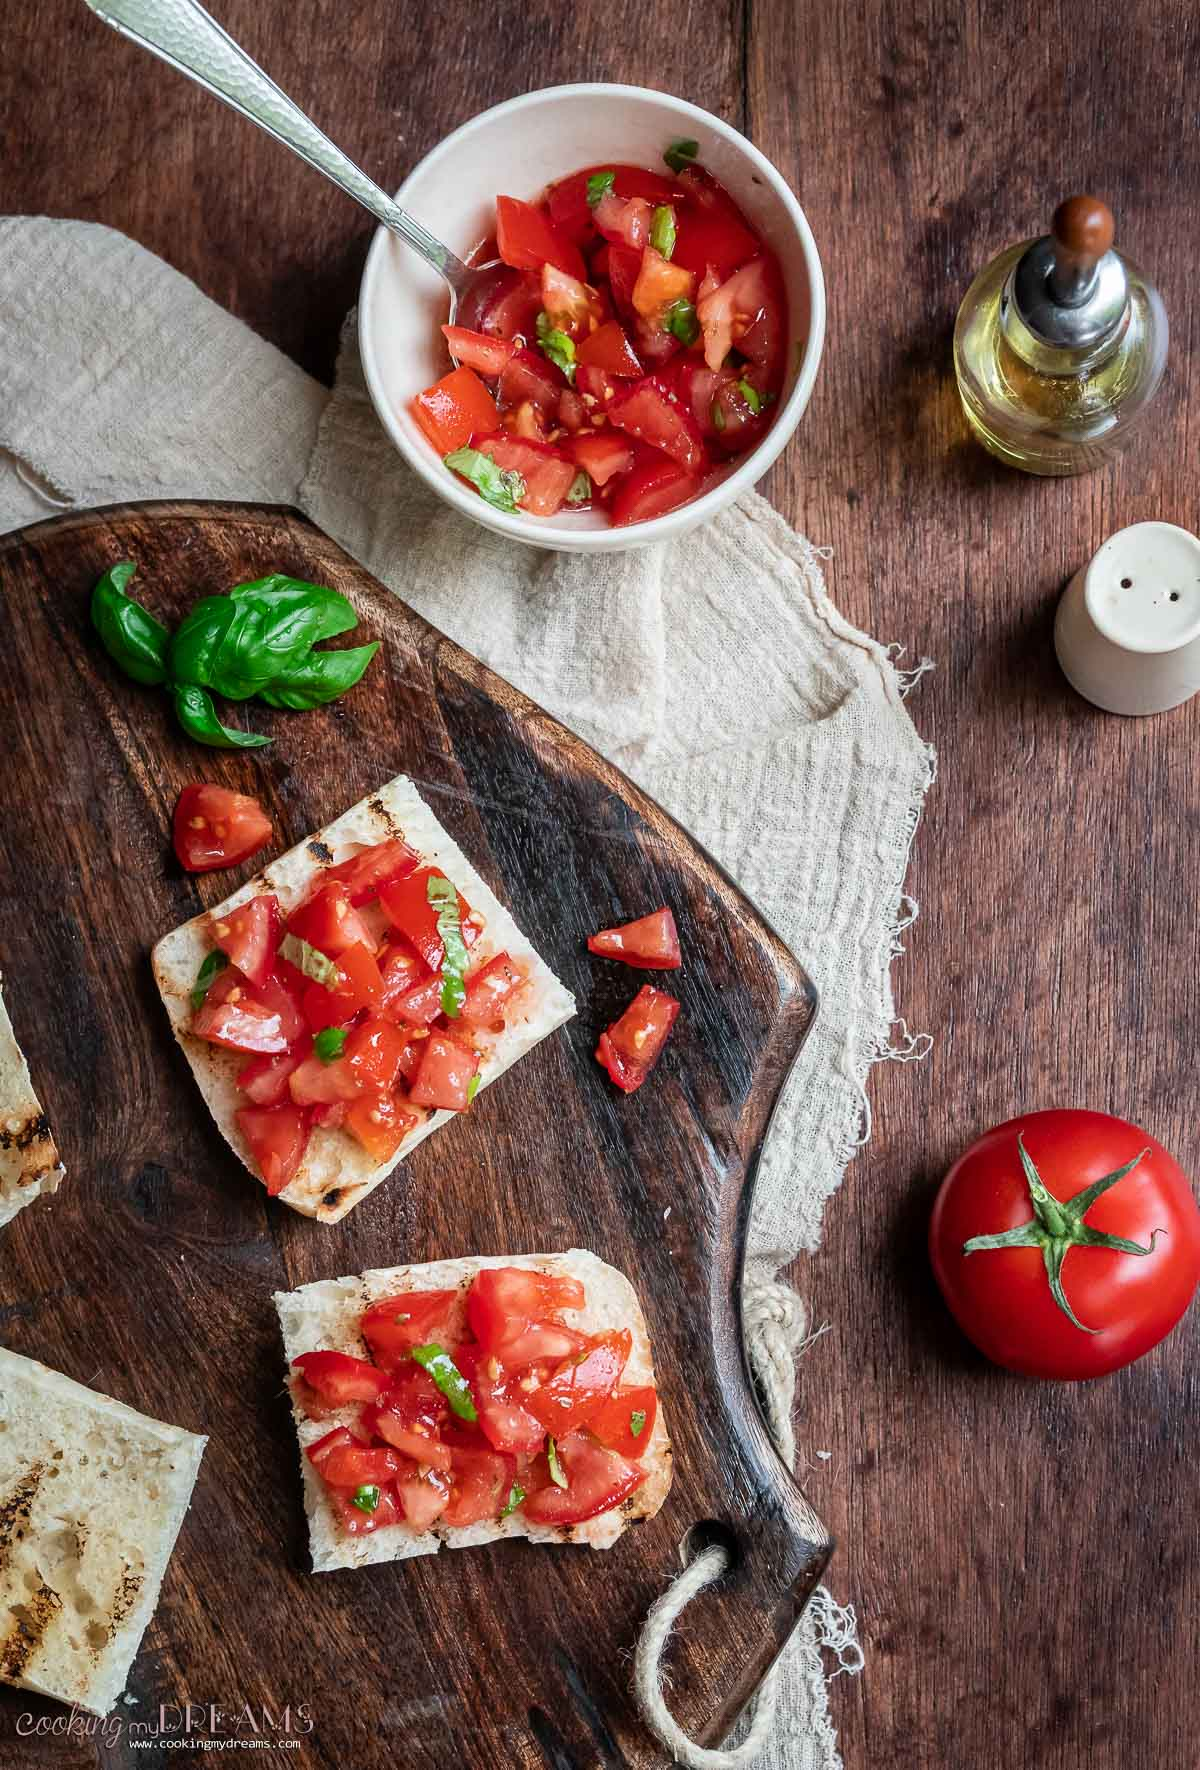 bread and tomatoes on a wooden cutting board